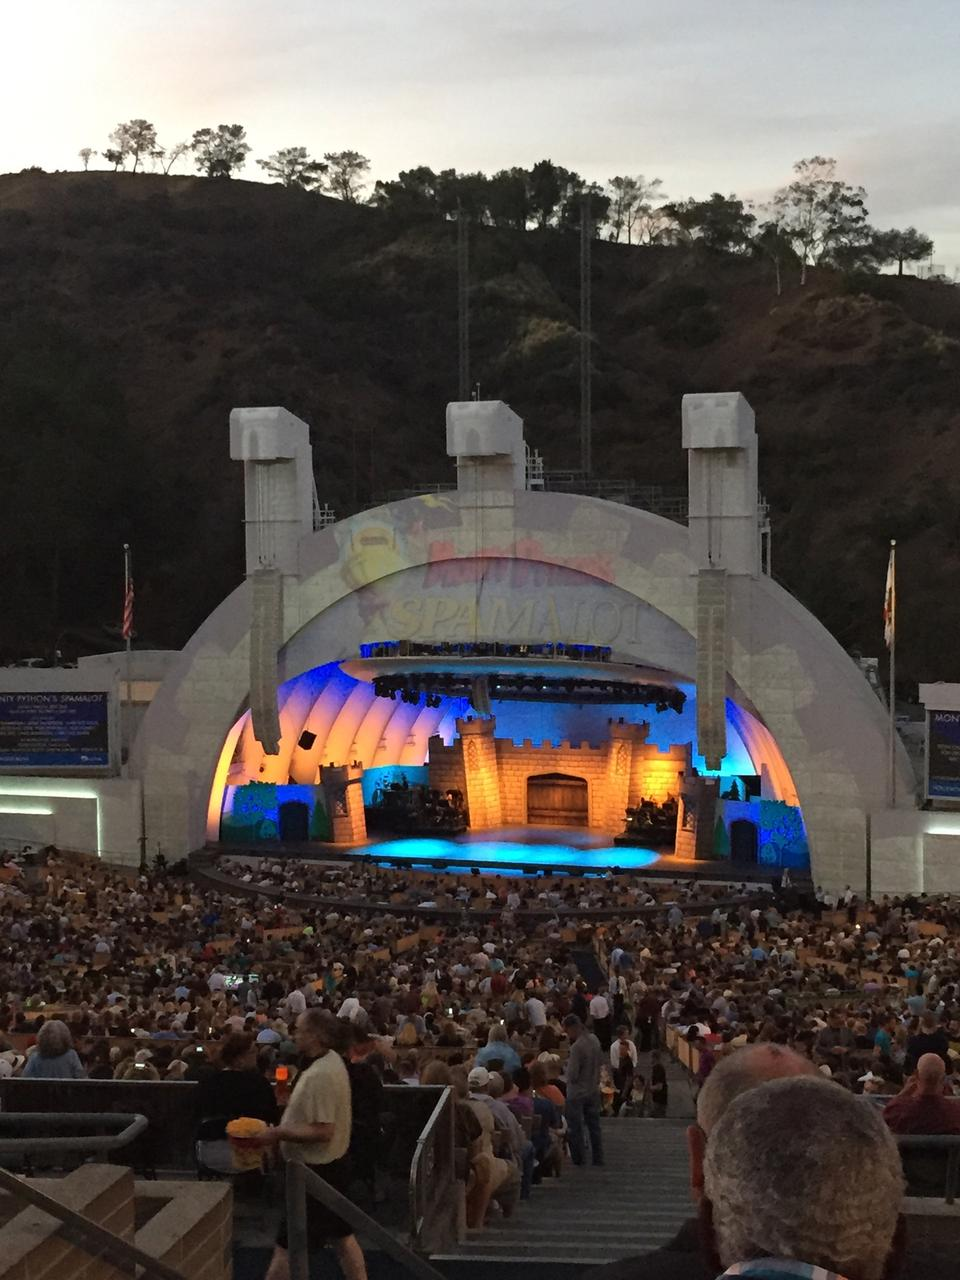 Hollywood Bowl Concerts >> Hollywood Bowl Section L1 - RateYourSeats.com